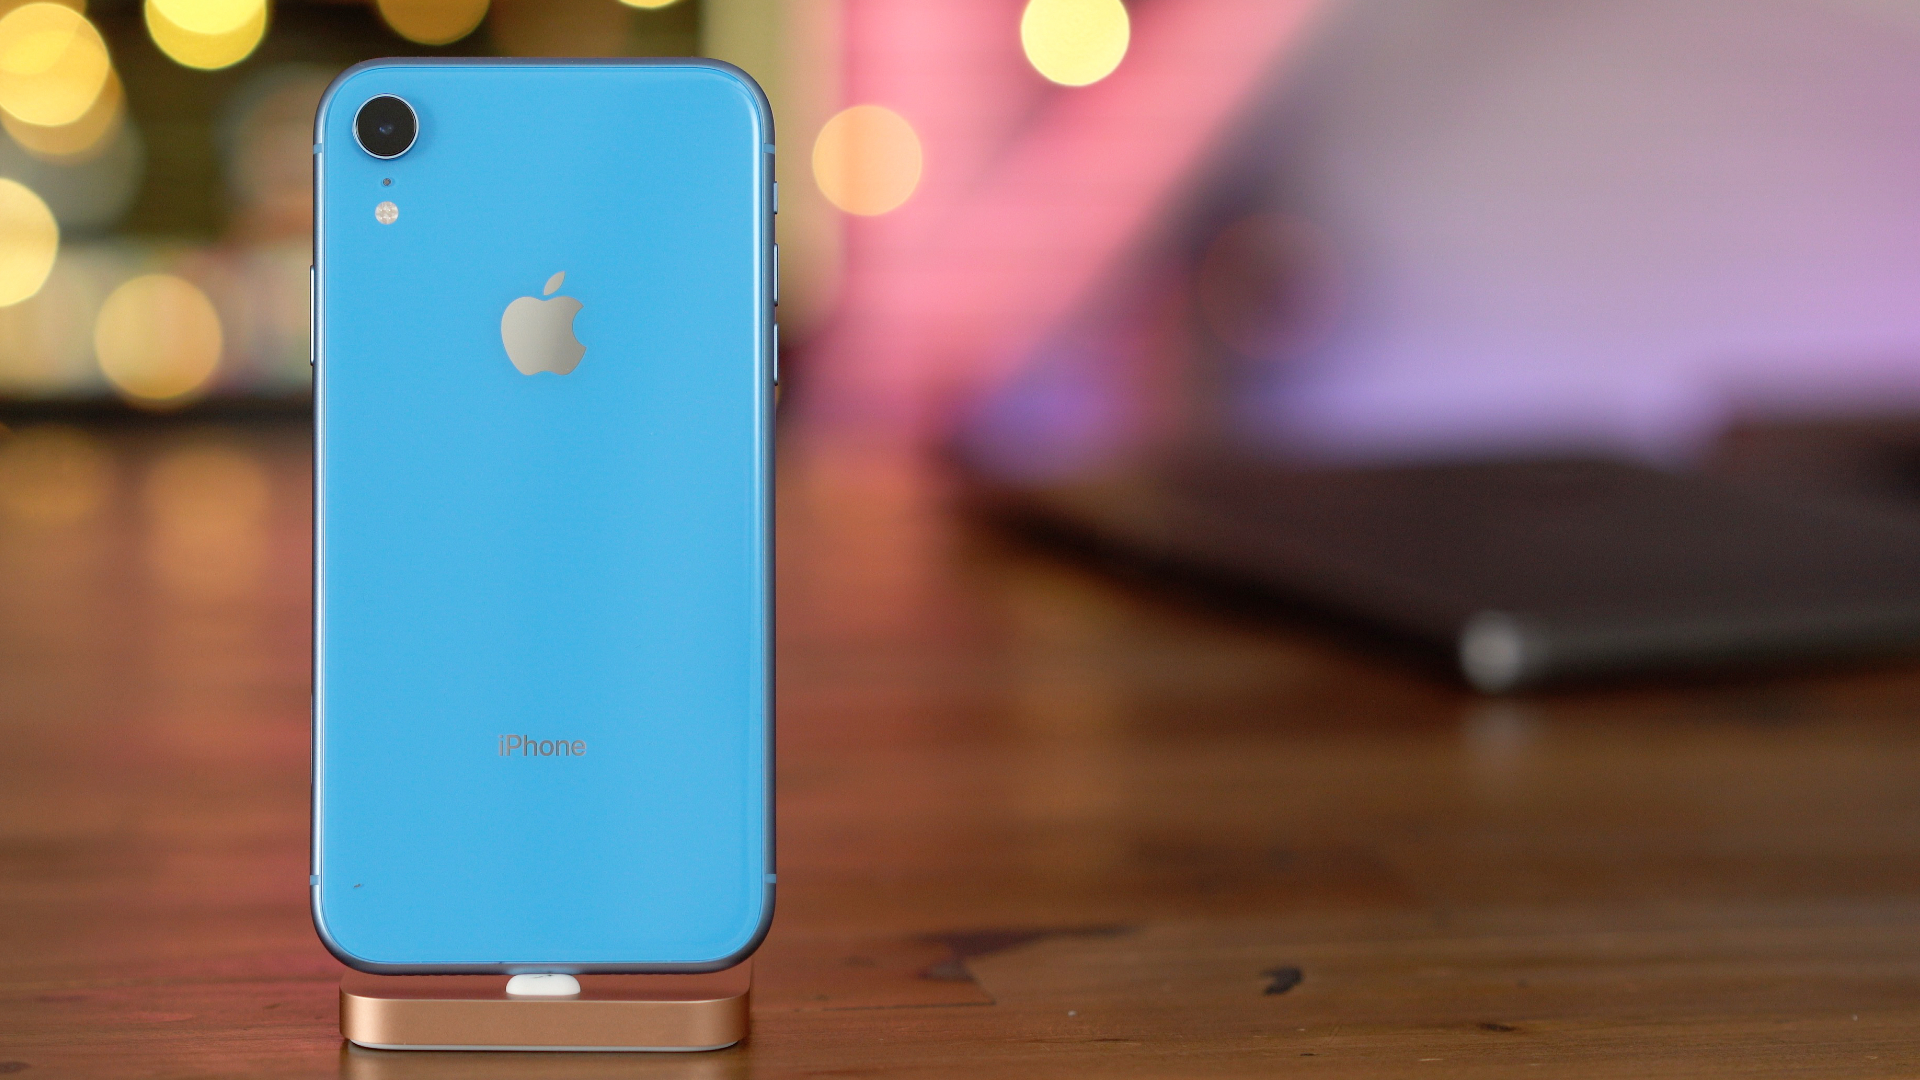 Iphone Xr: 10 Ways The IPhone XR Is Worse Than The IPhone XS [Video